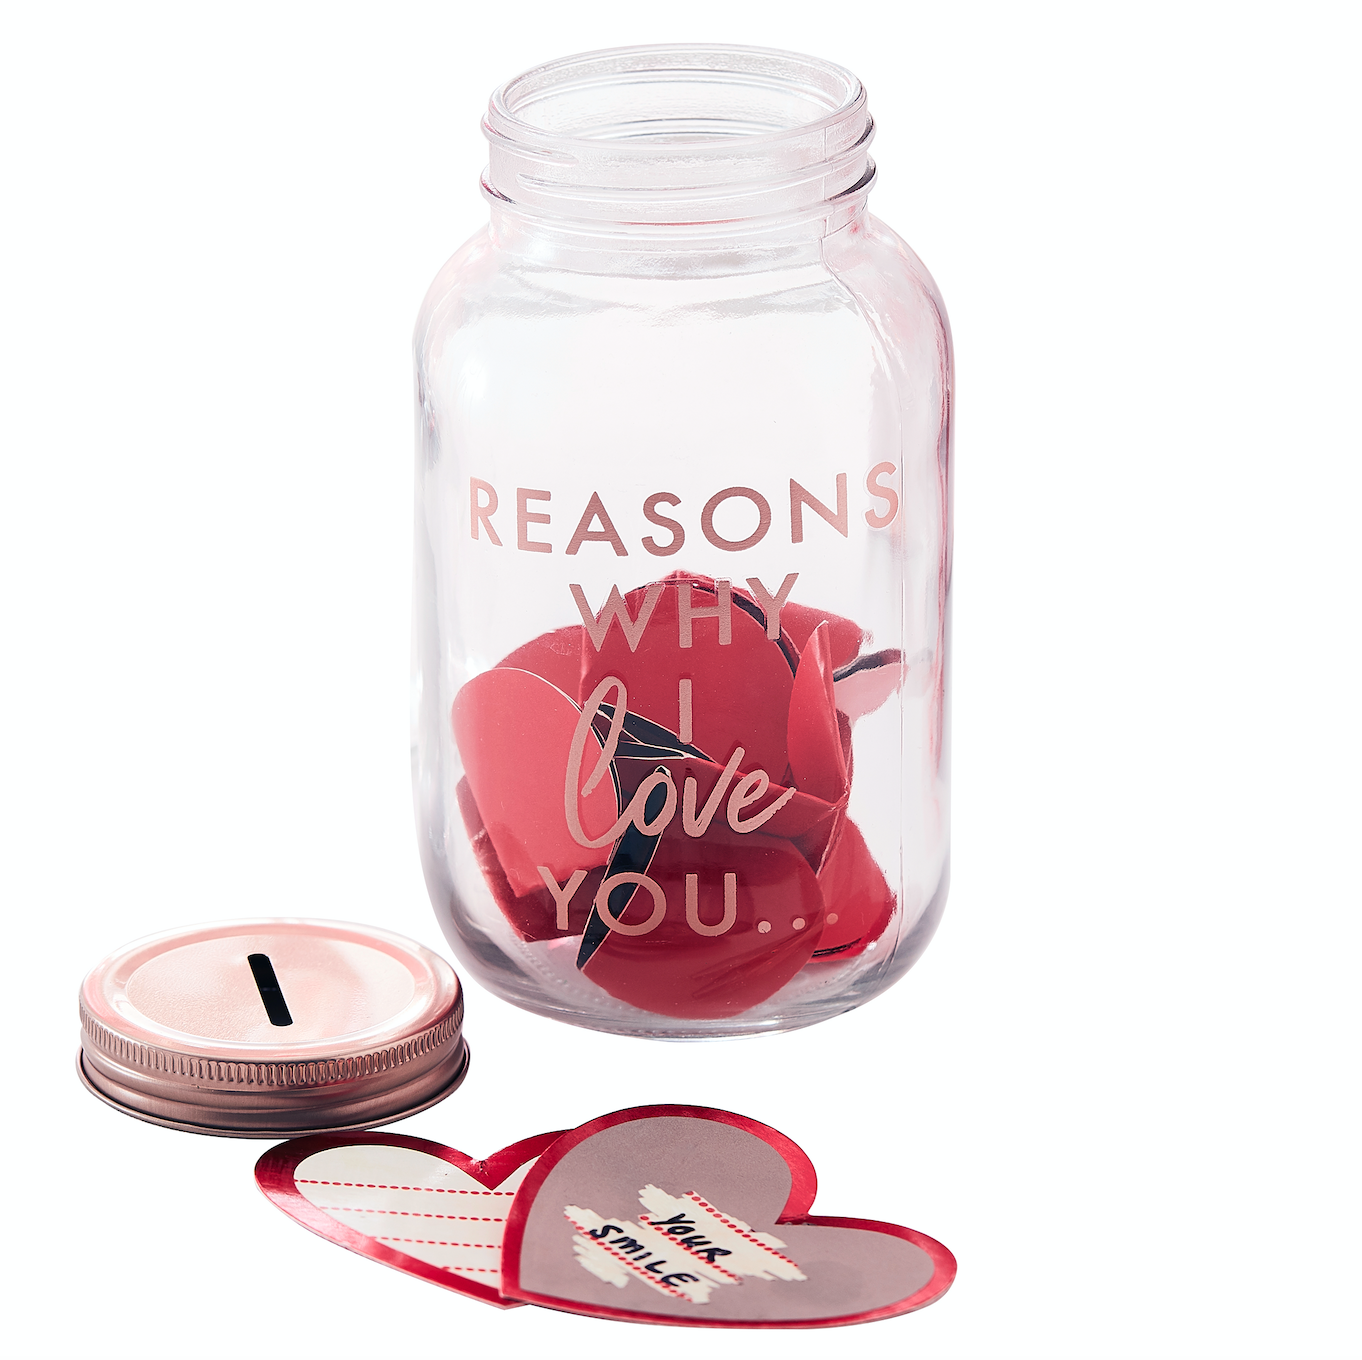 'Reasons Why I Love You' Valentines Jar